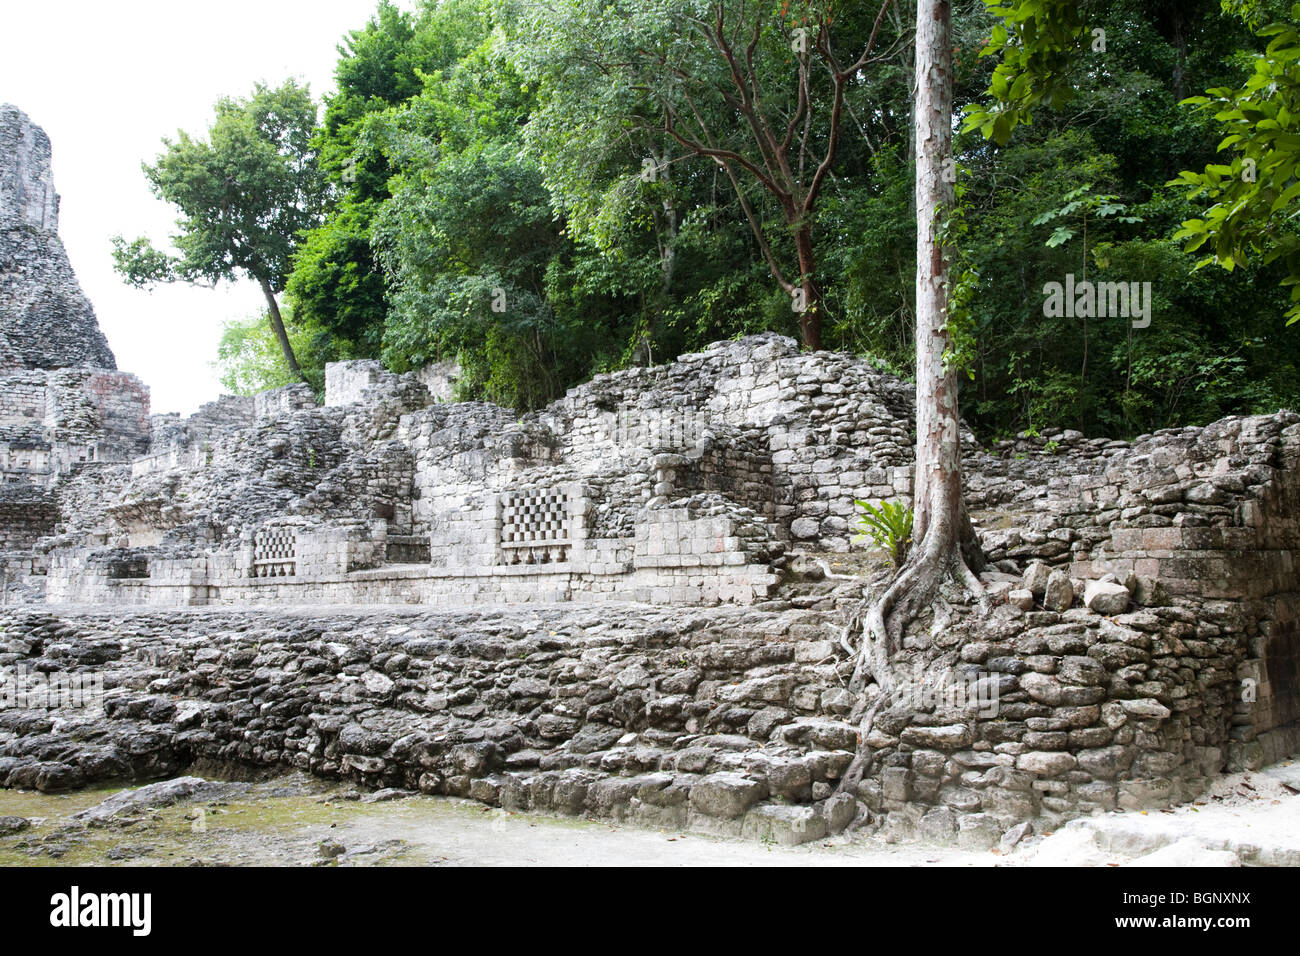 Becán Maya Ruins archaeology site, Campeche Mexico. - Stock Image